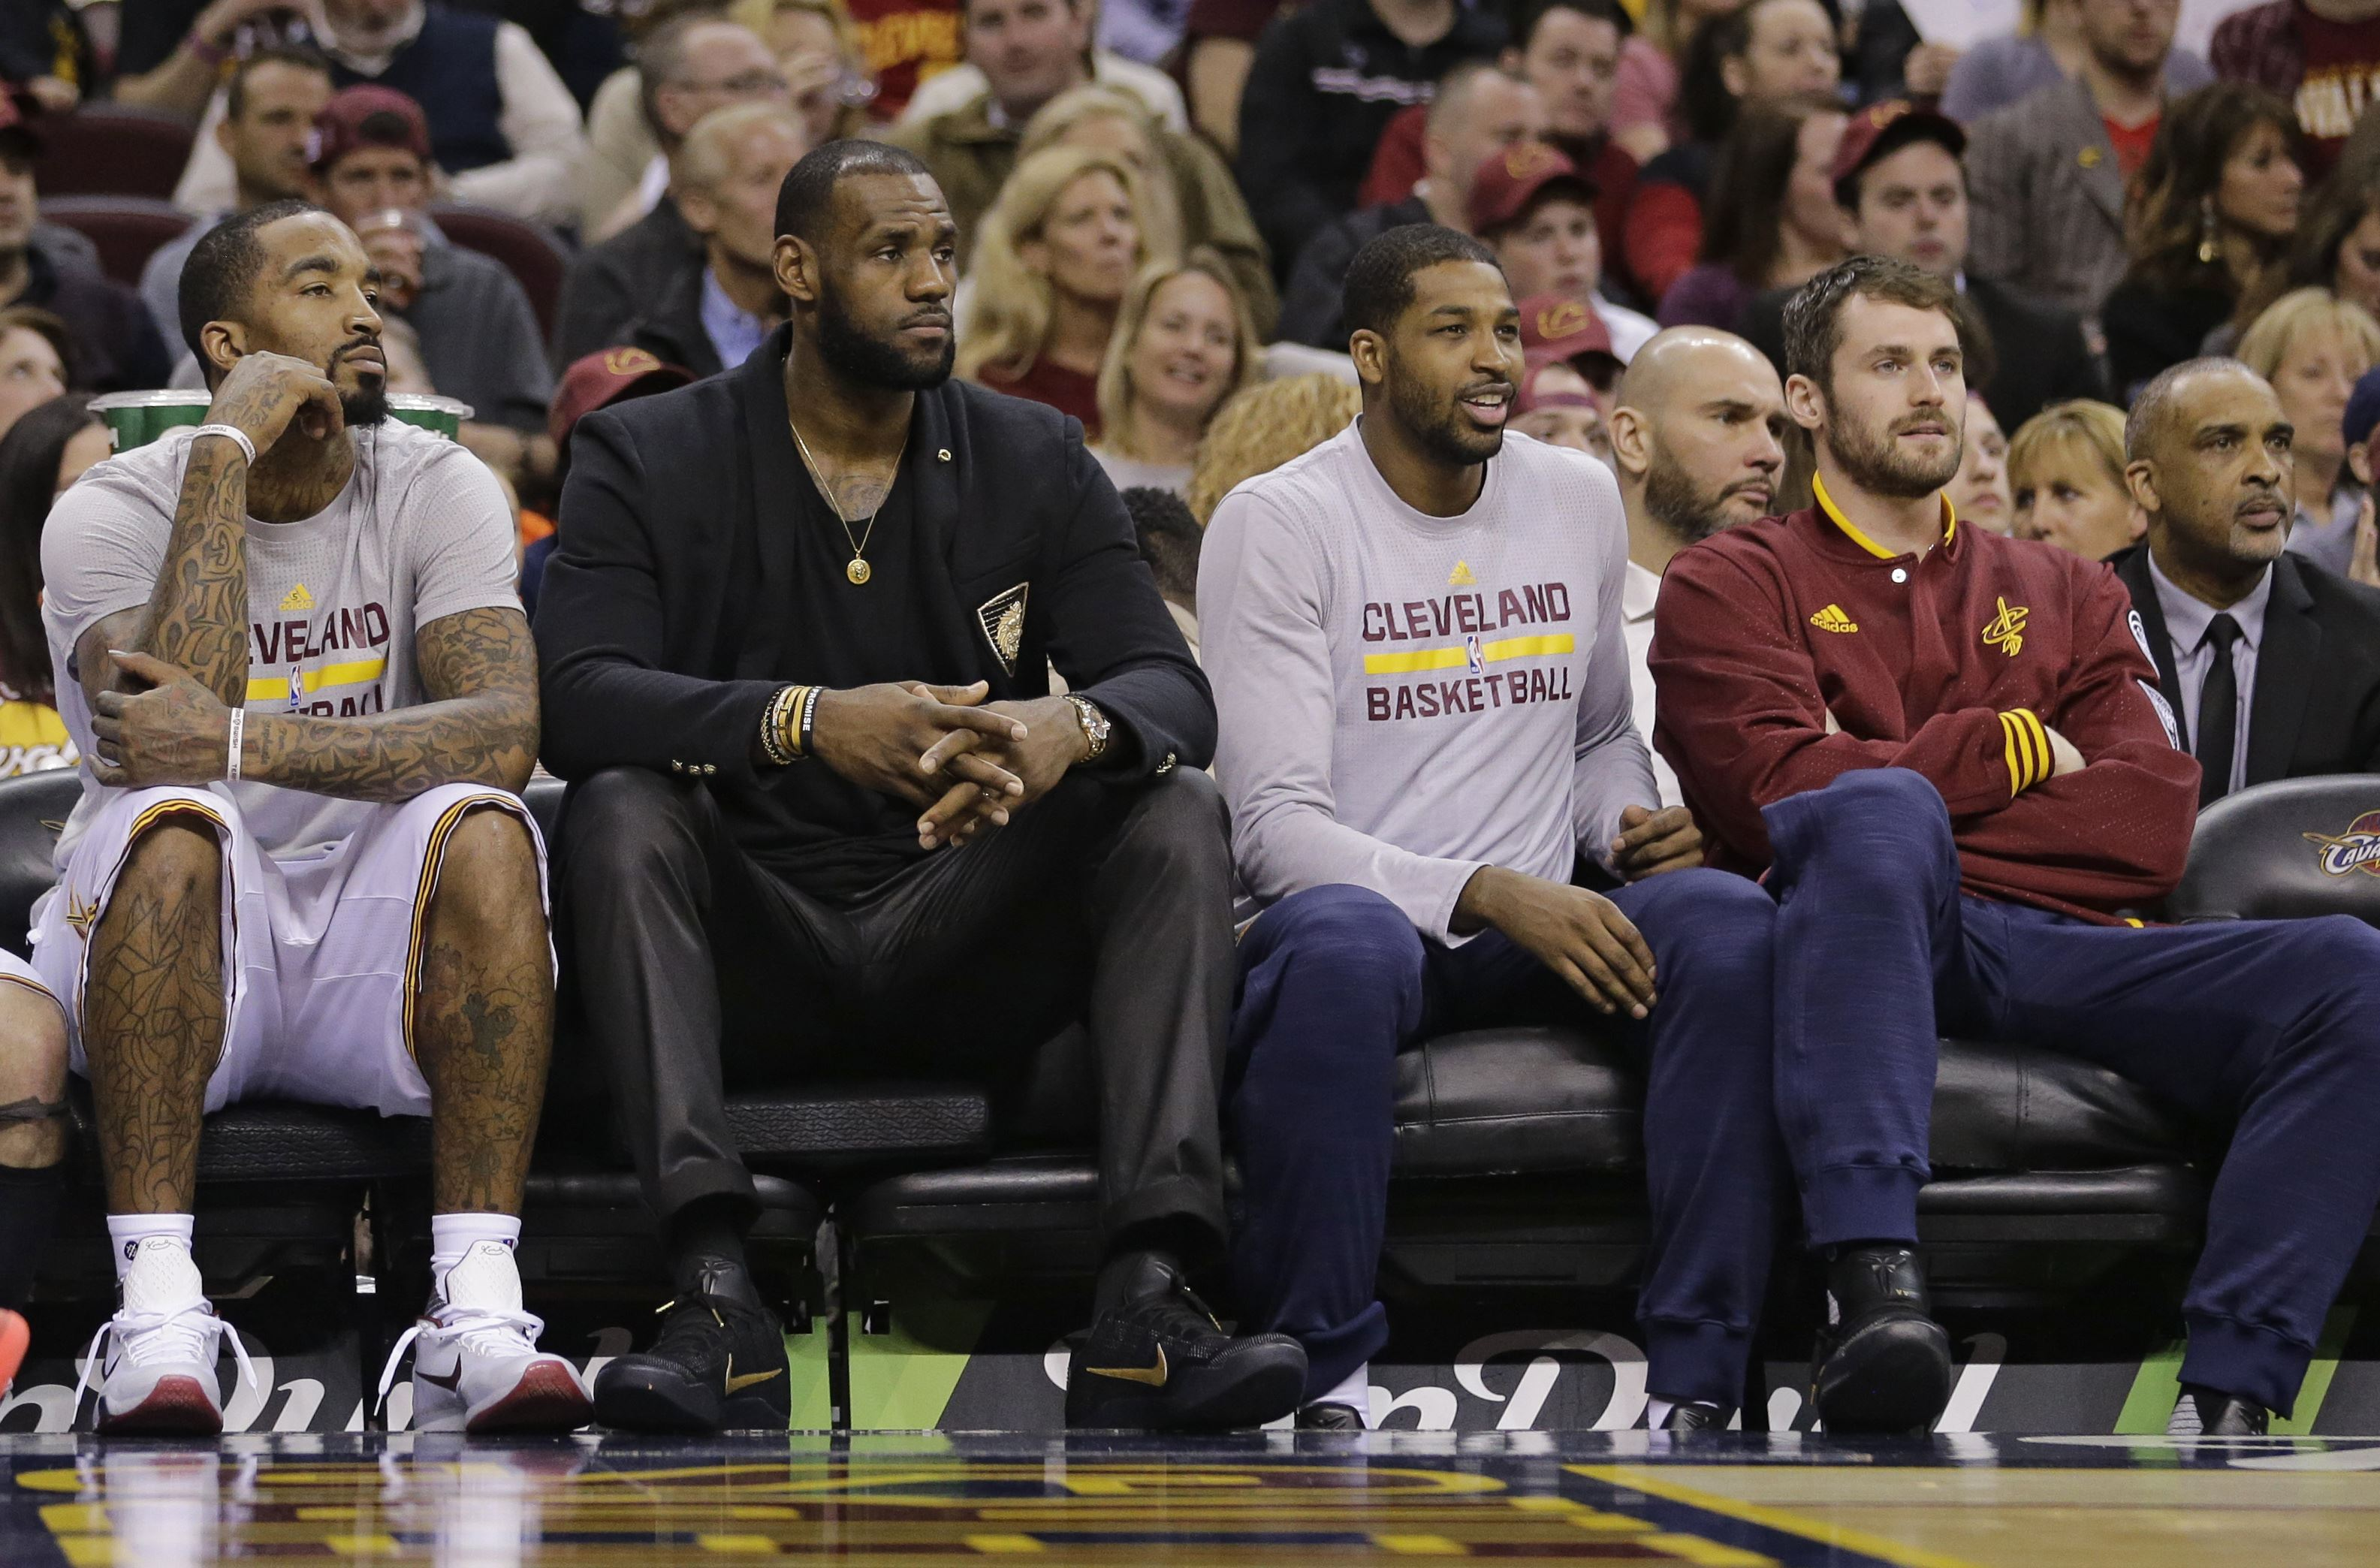 Image result for Kyrie Irving, J.R. Smith, LeBron James, Tristan Thompson, and Kevin Love